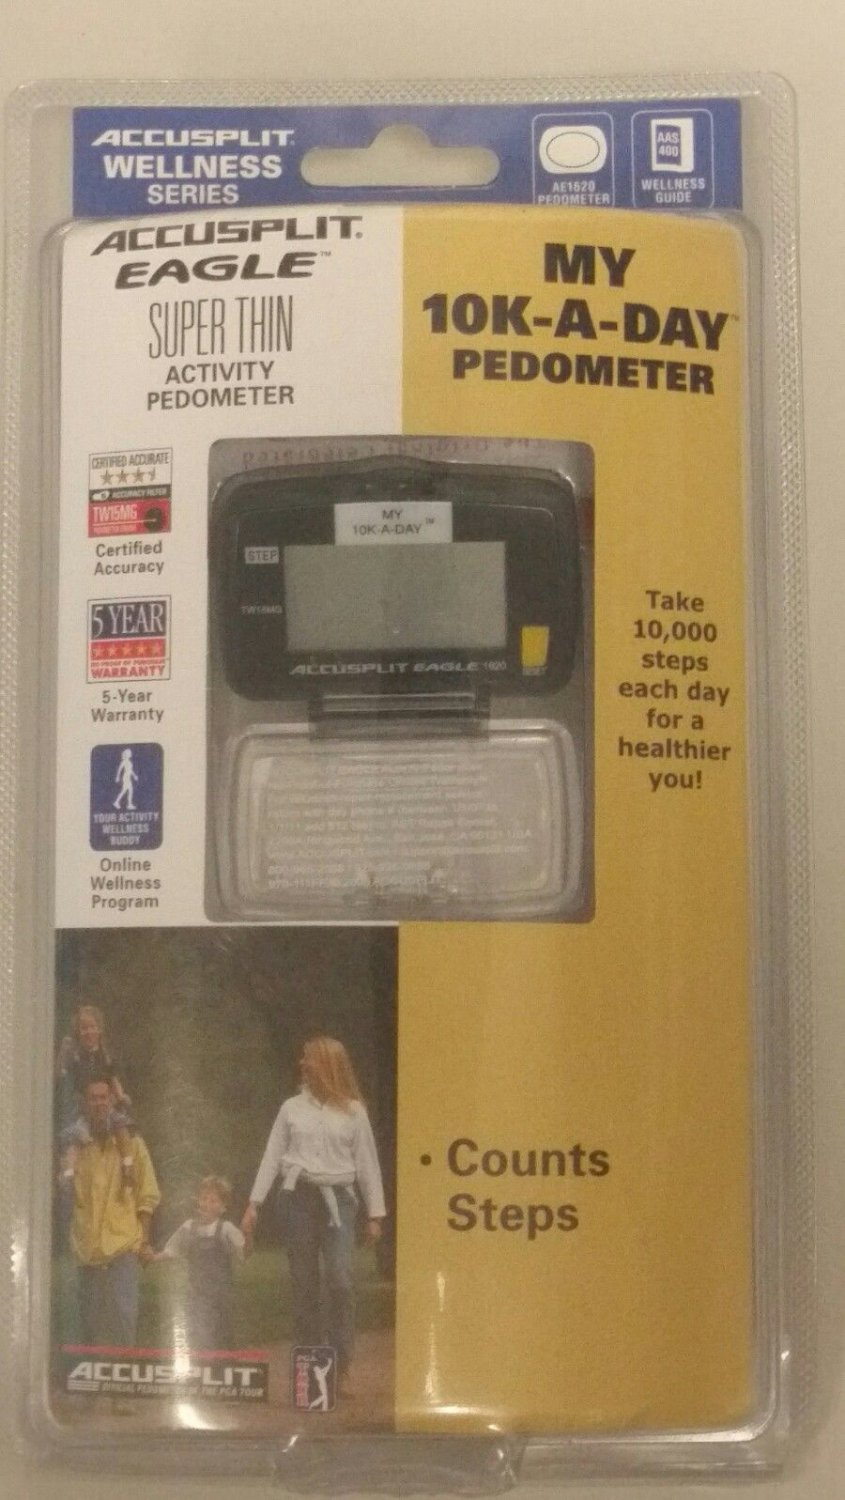 Accusplit AE1620 Eagle Step Activity Pedometer in Blister